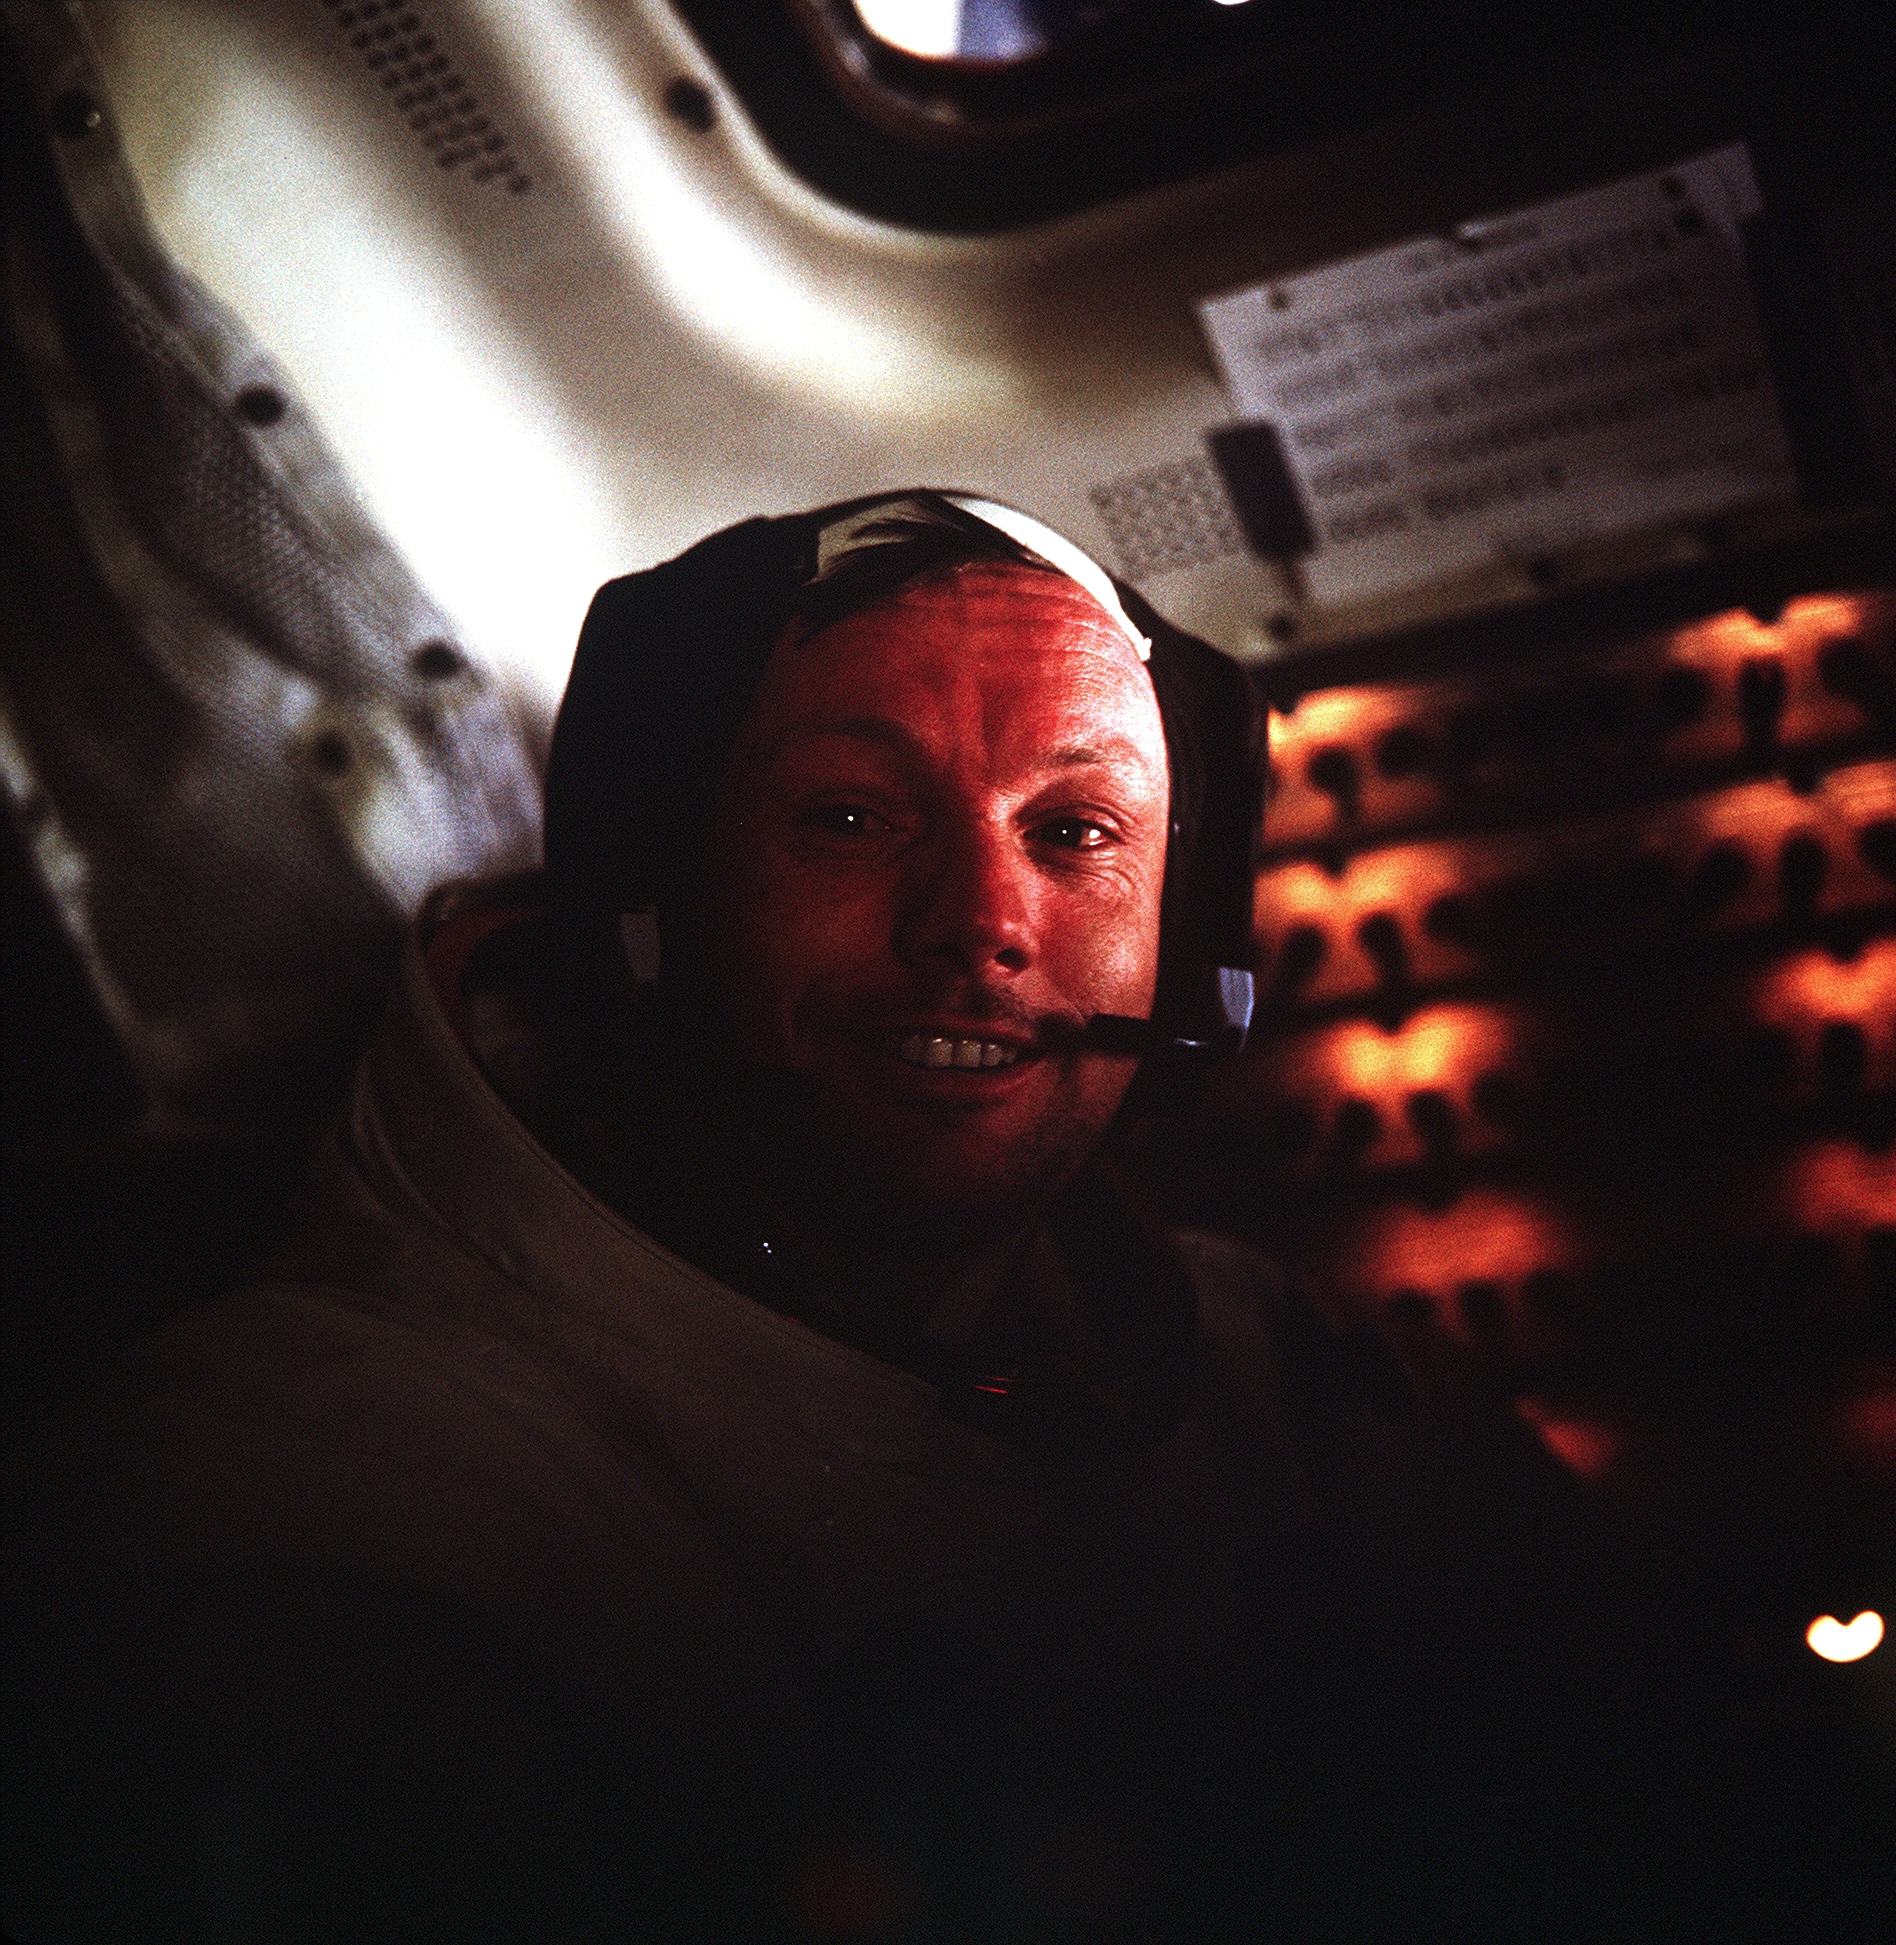 real black holes spaceship neil armstrong - photo #42